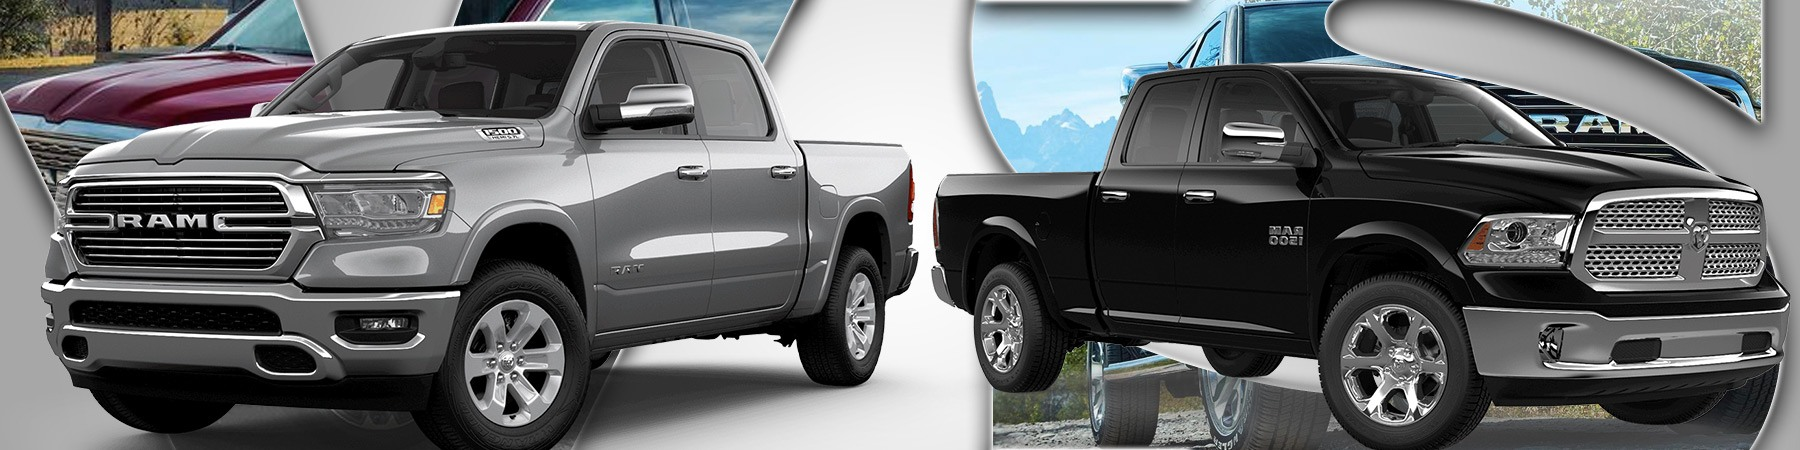 The 2019 RAM 1500 vs  The 2018 RAM 1500 - What's Changed